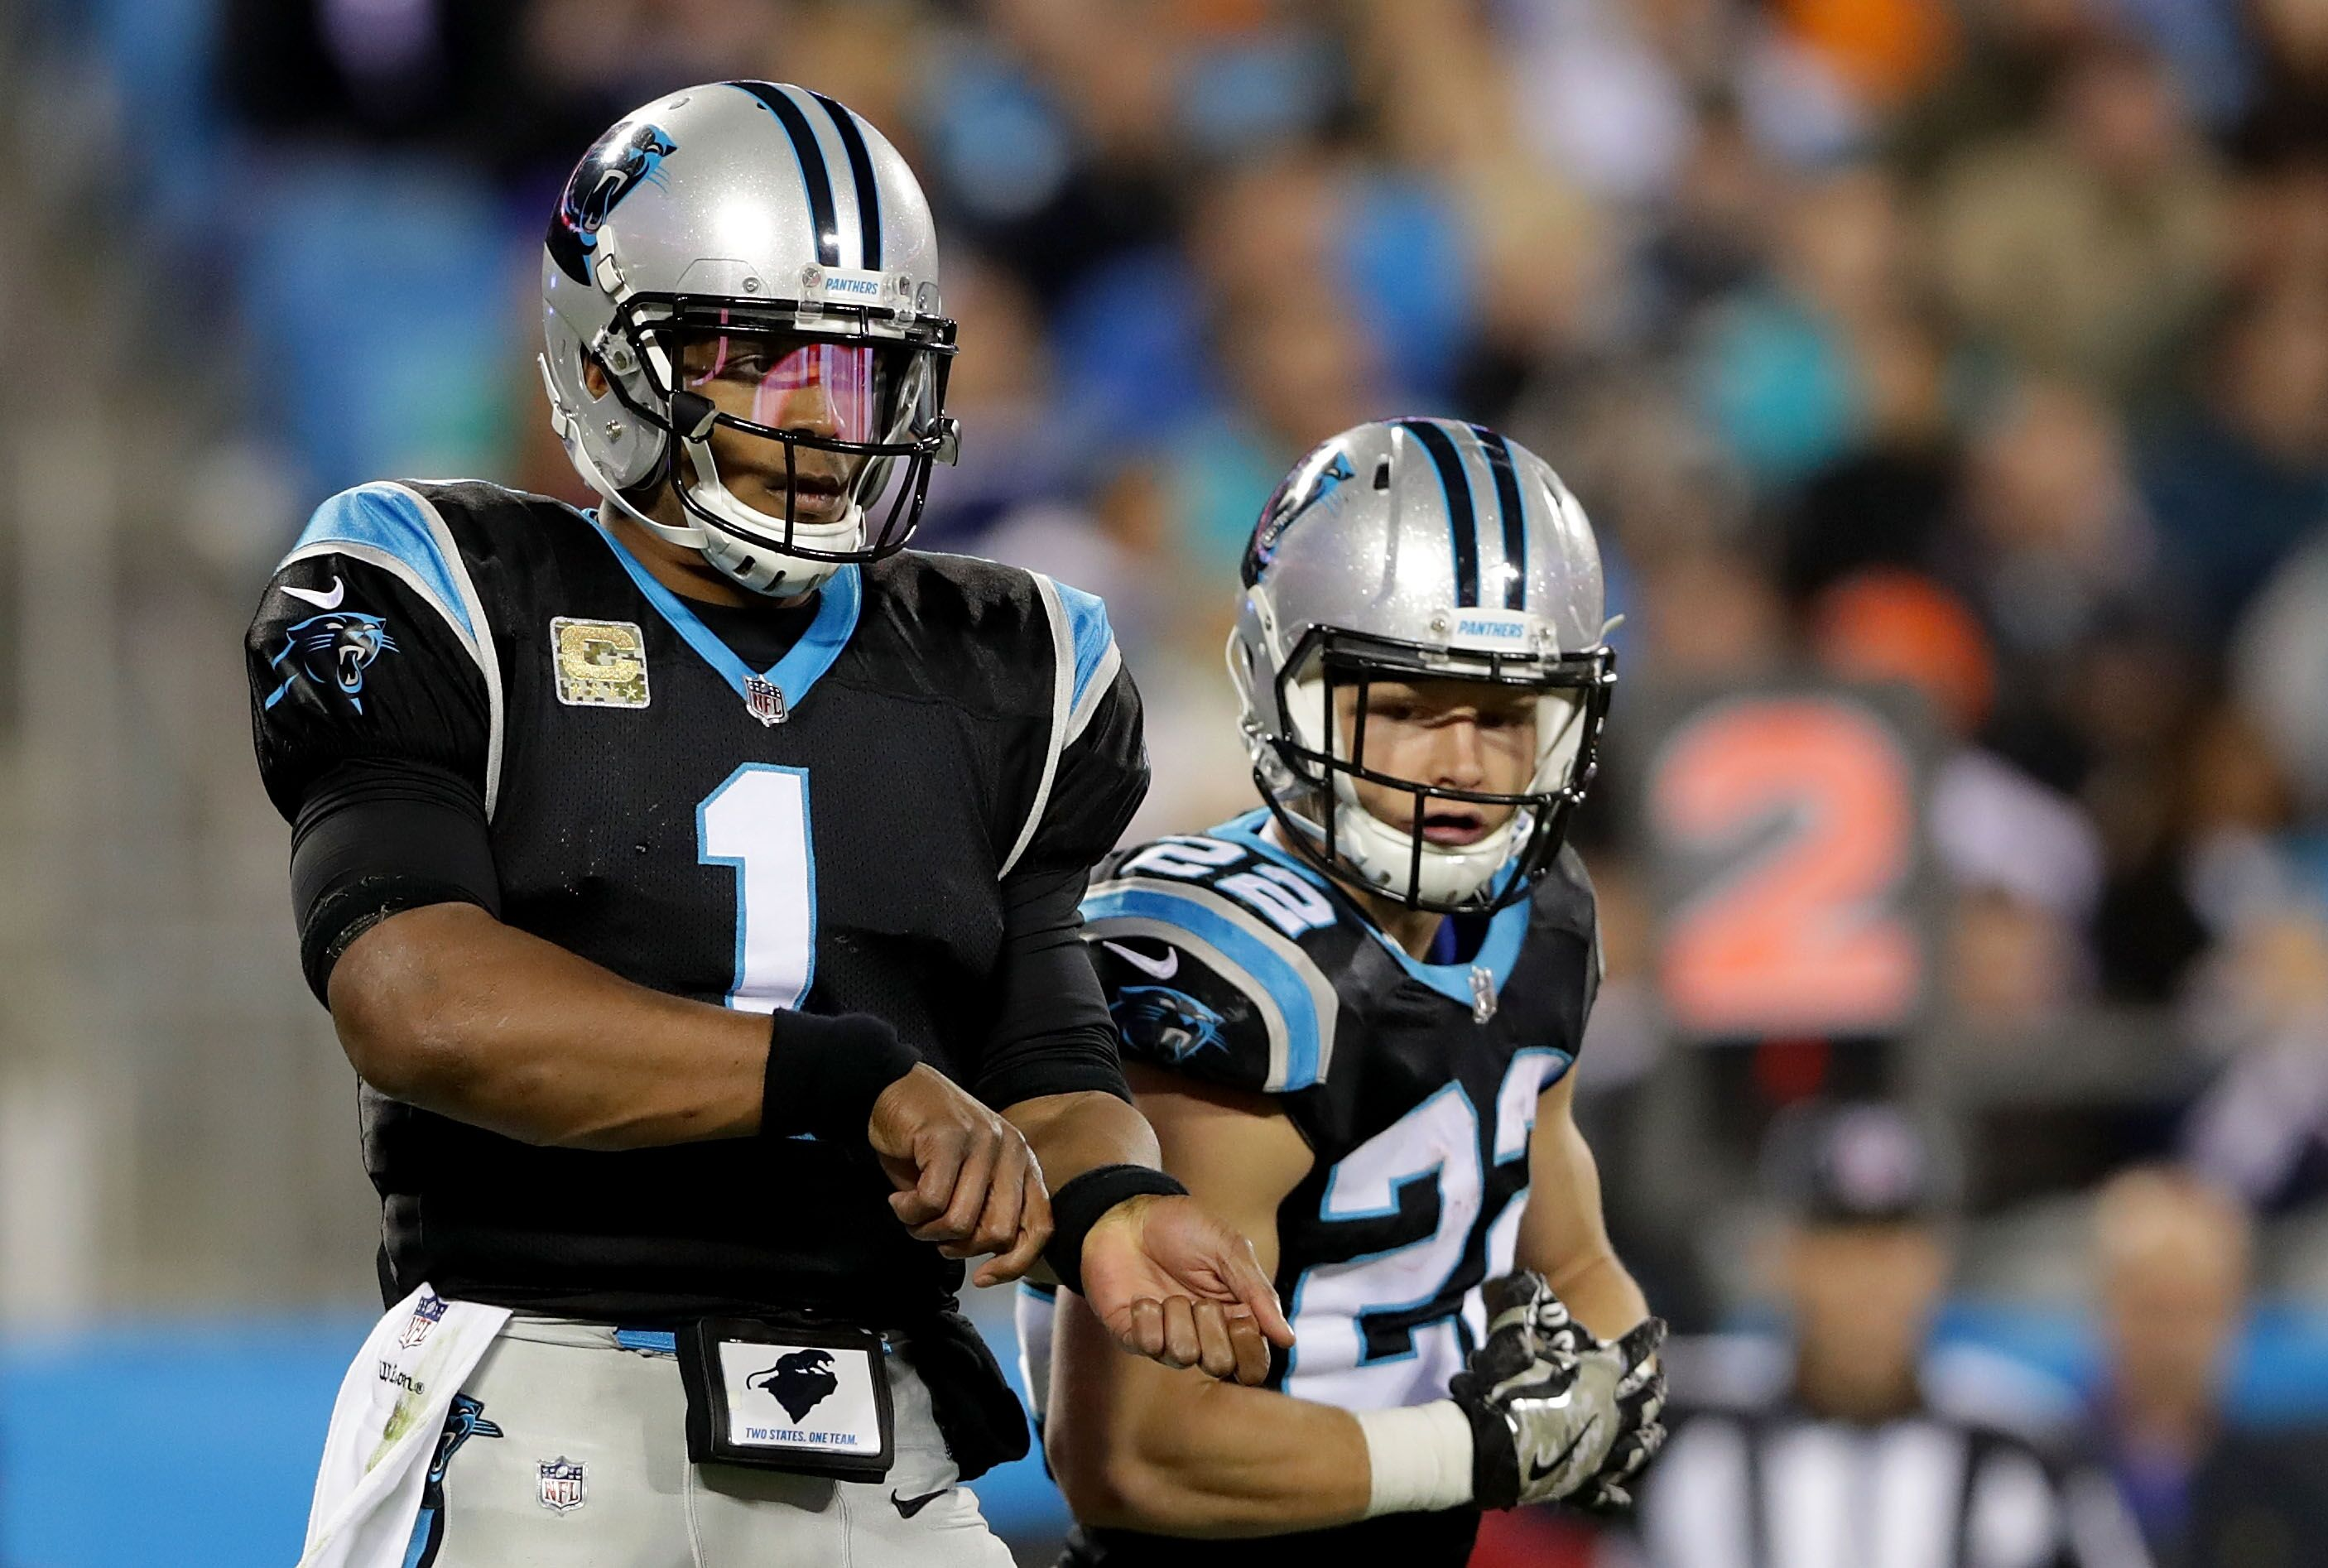 d7d84bc9 Carolina Panthers ball carrying duo selected as best in the NFL